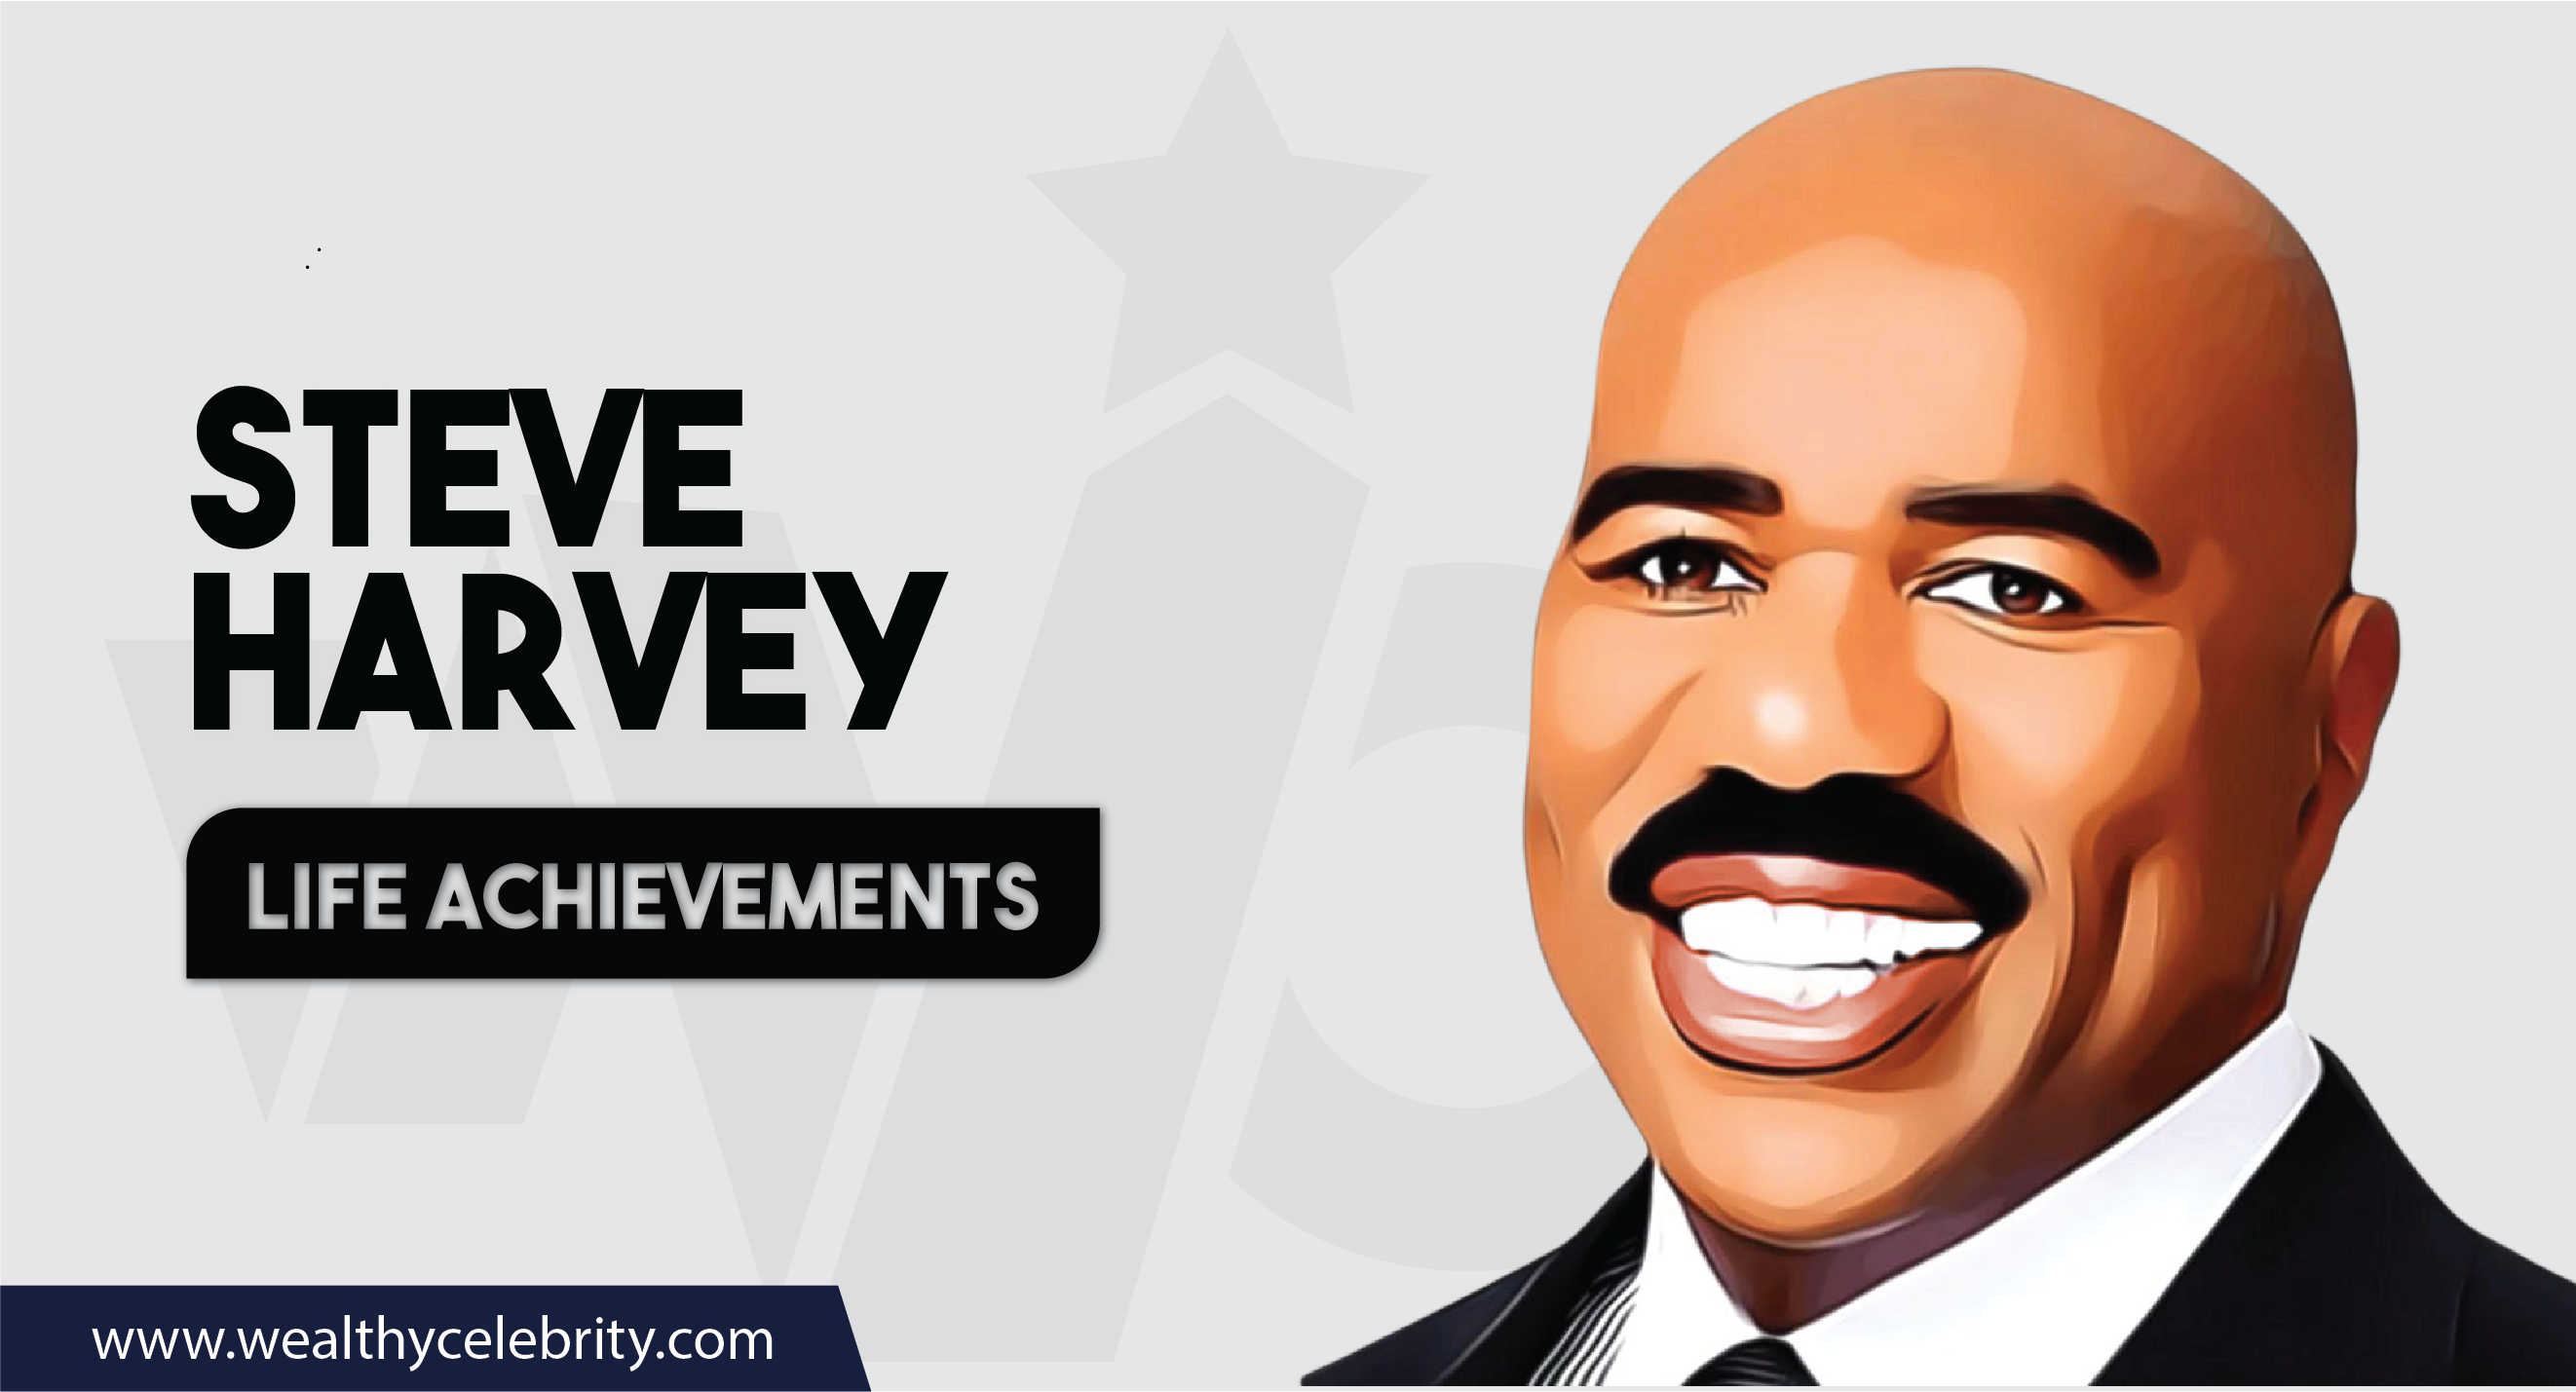 Steve Harvey_Life Achievements